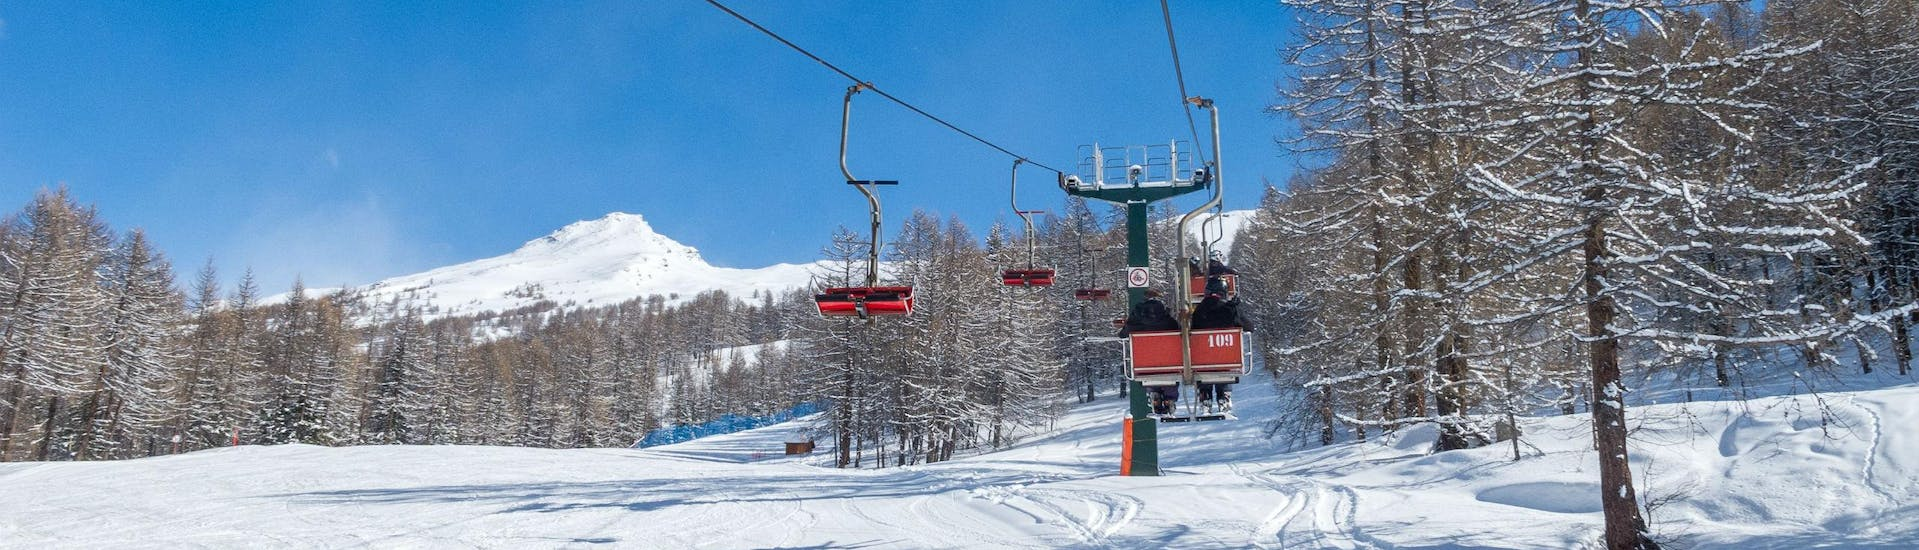 View of a ski lift transporting skiers up to the top of the mountain in the ski resort of Bardonecchia, where local ski schools offer a broad selection of ski lessons.